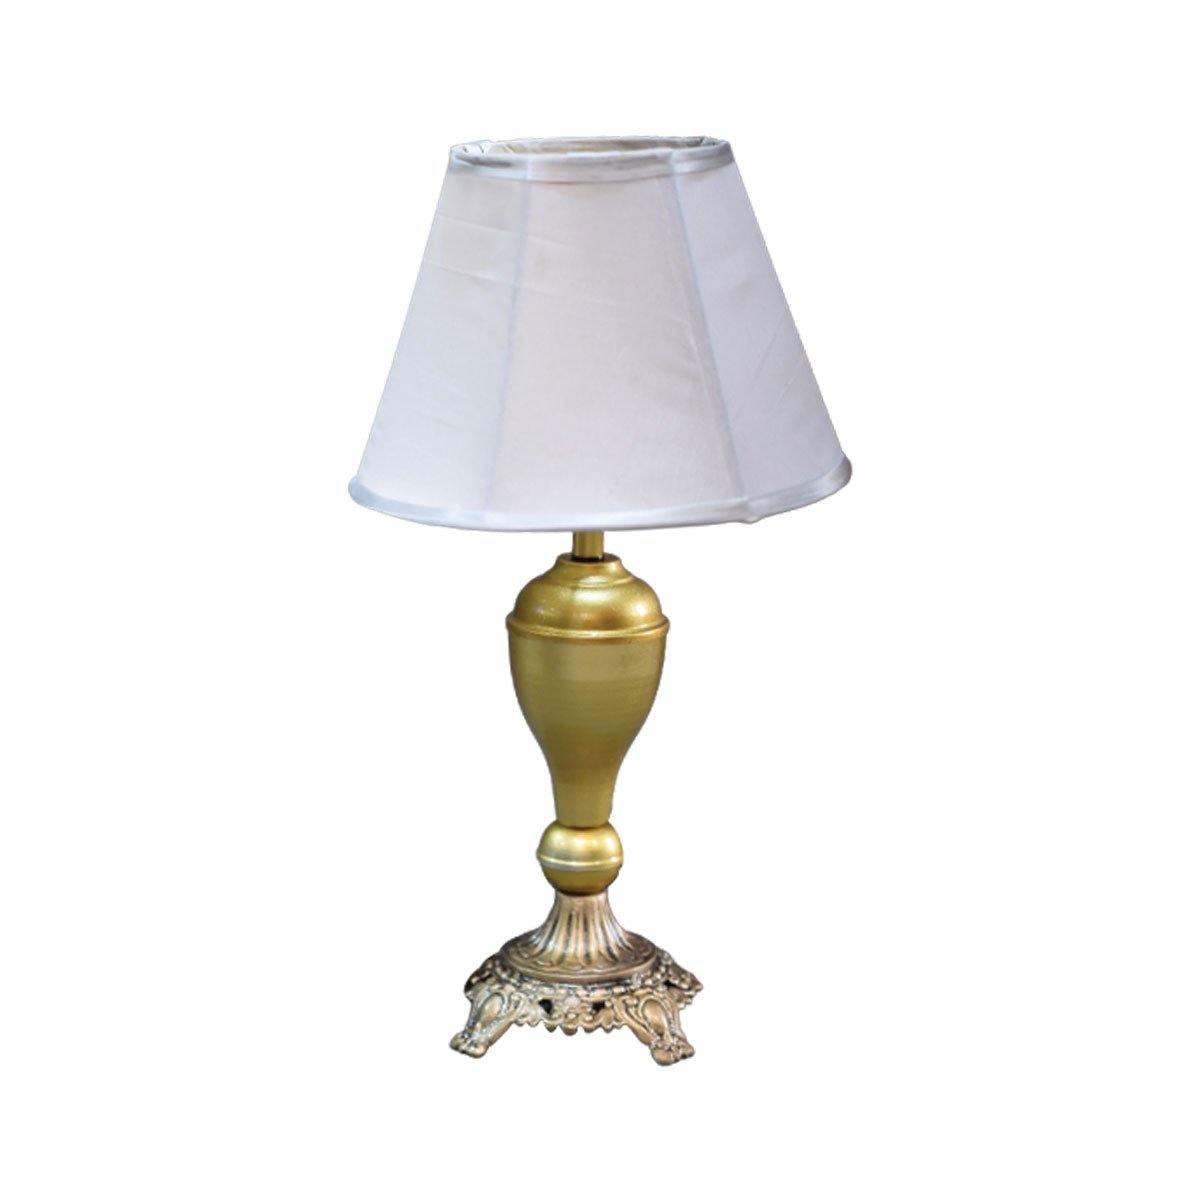 Traditional Golden Table lamp